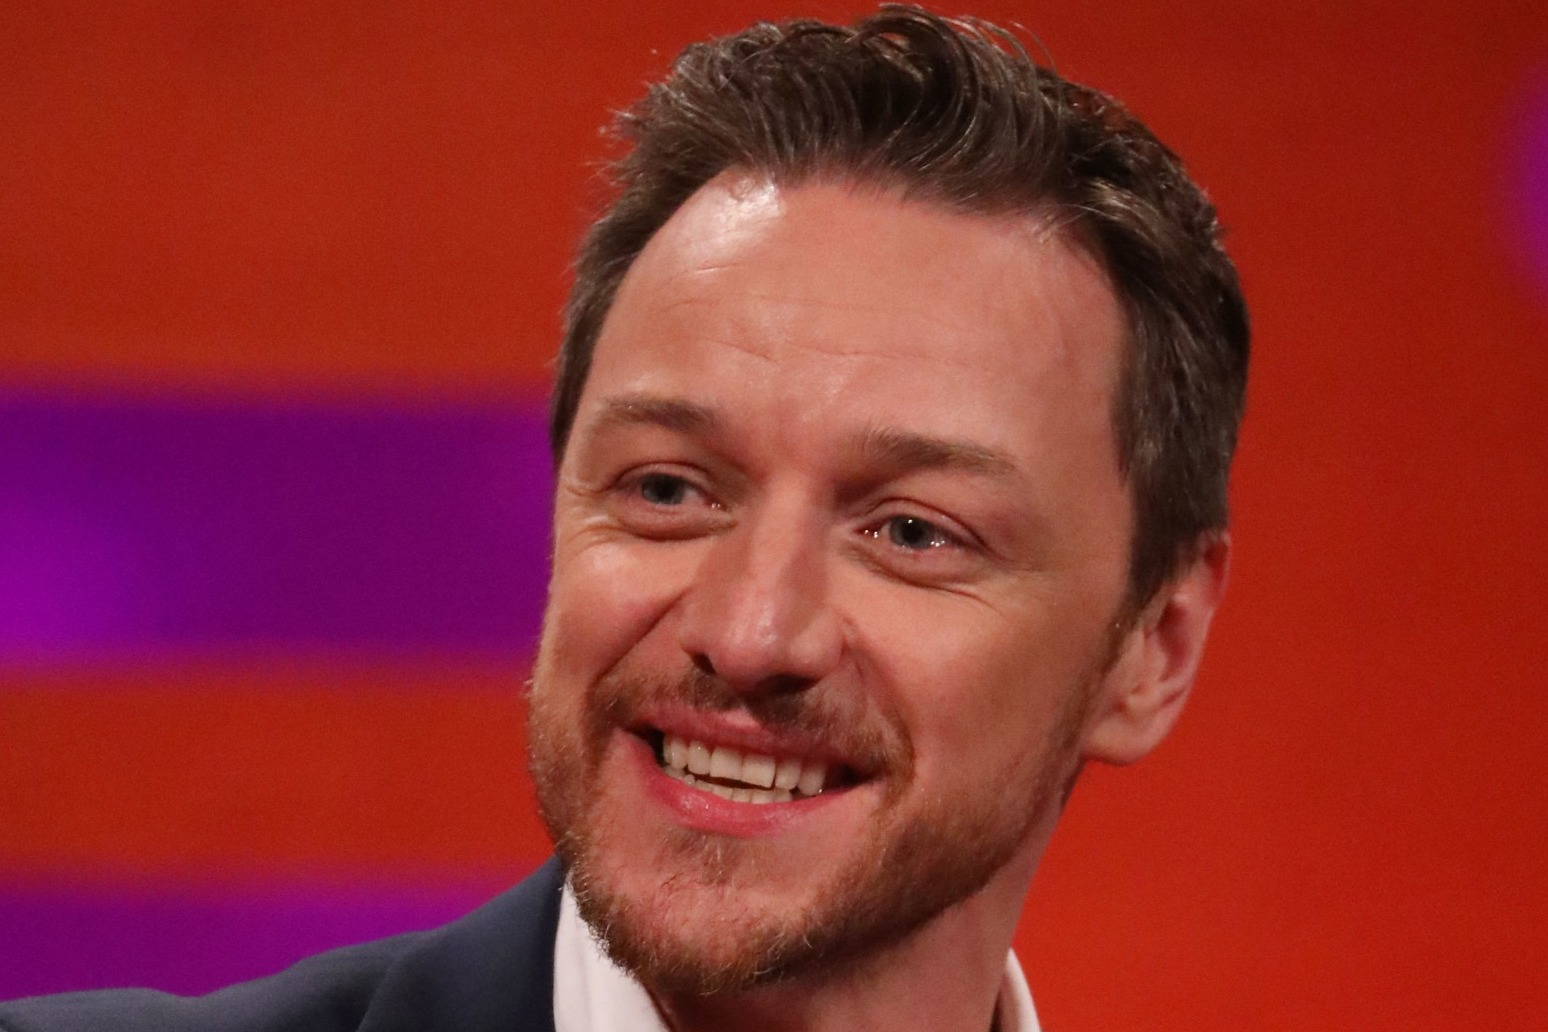 \'We value you so much\' - James McAvoy\'s message to NHS frontline workers